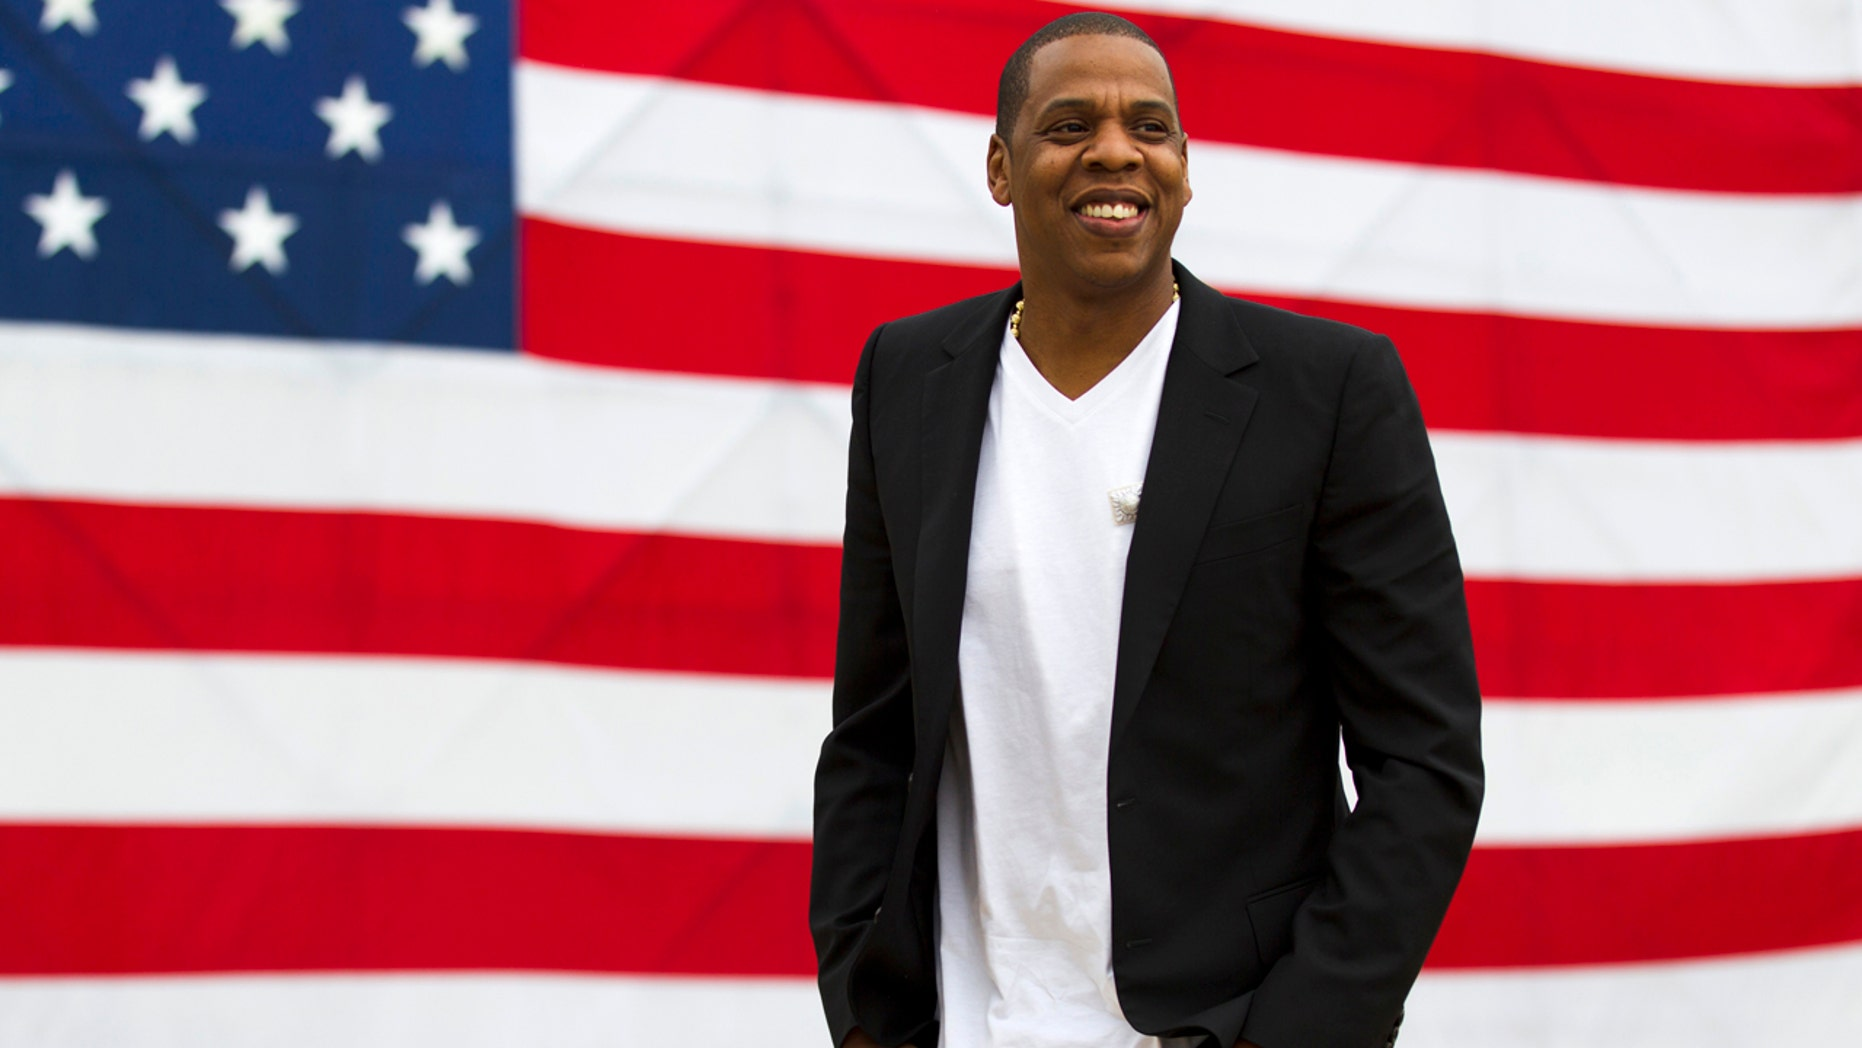 Jay Z's popular 'Made in America' music festival booted from the Philadelphia parkway by the city's mayor.